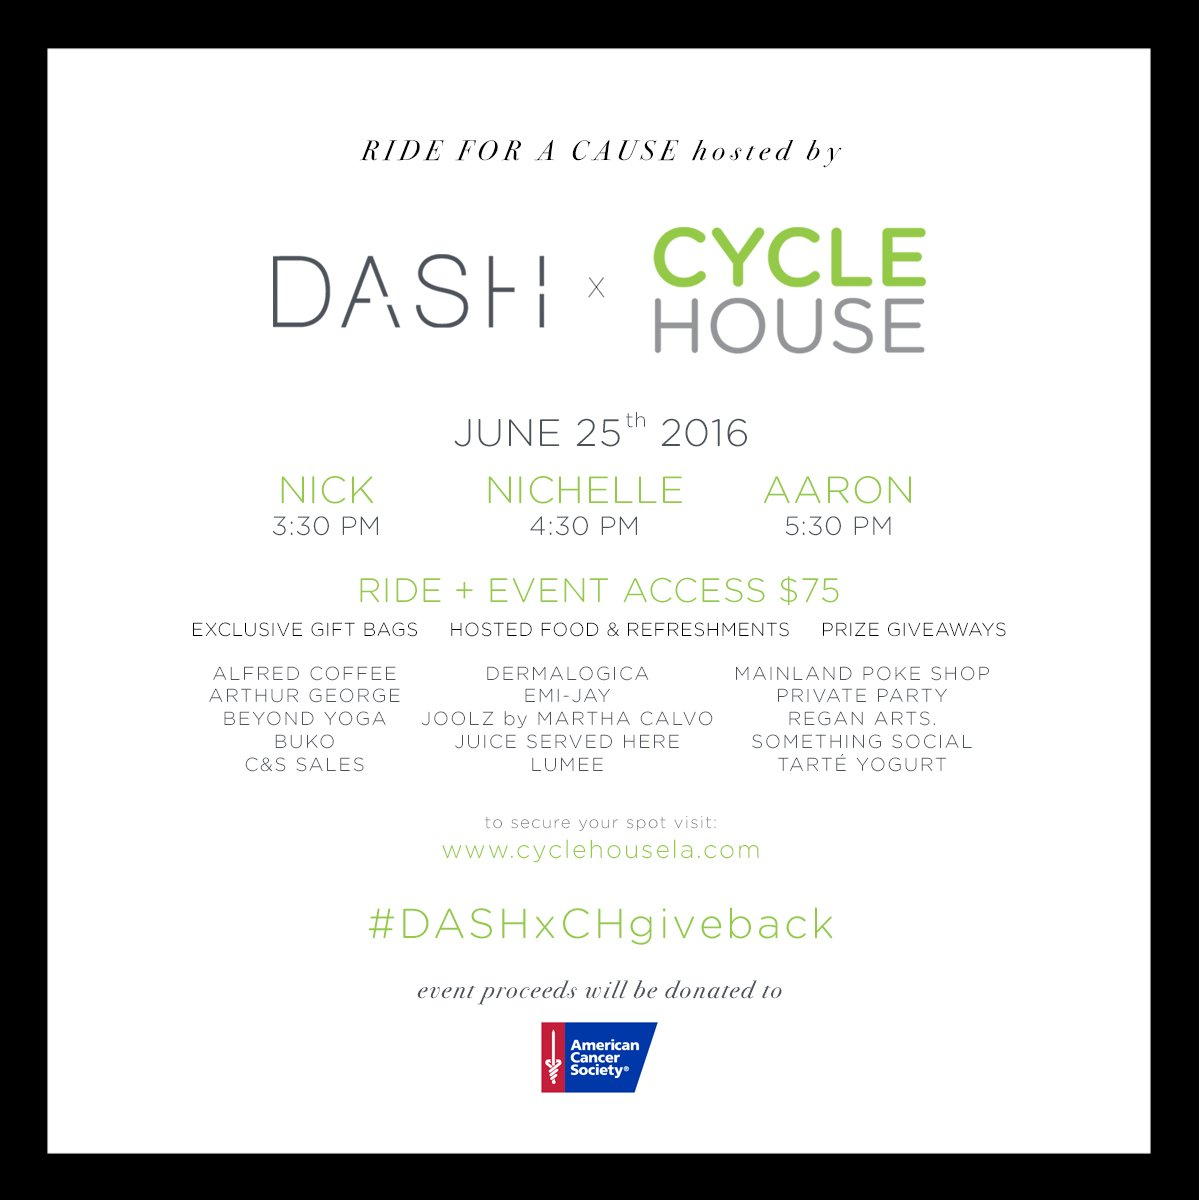 If you're in LA, sign up for @dashboutique's 'Ride for a Cause' to benefit @AmericanCancer https://t.co/shJBmUCjzW https://t.co/XX8kg7HMNX